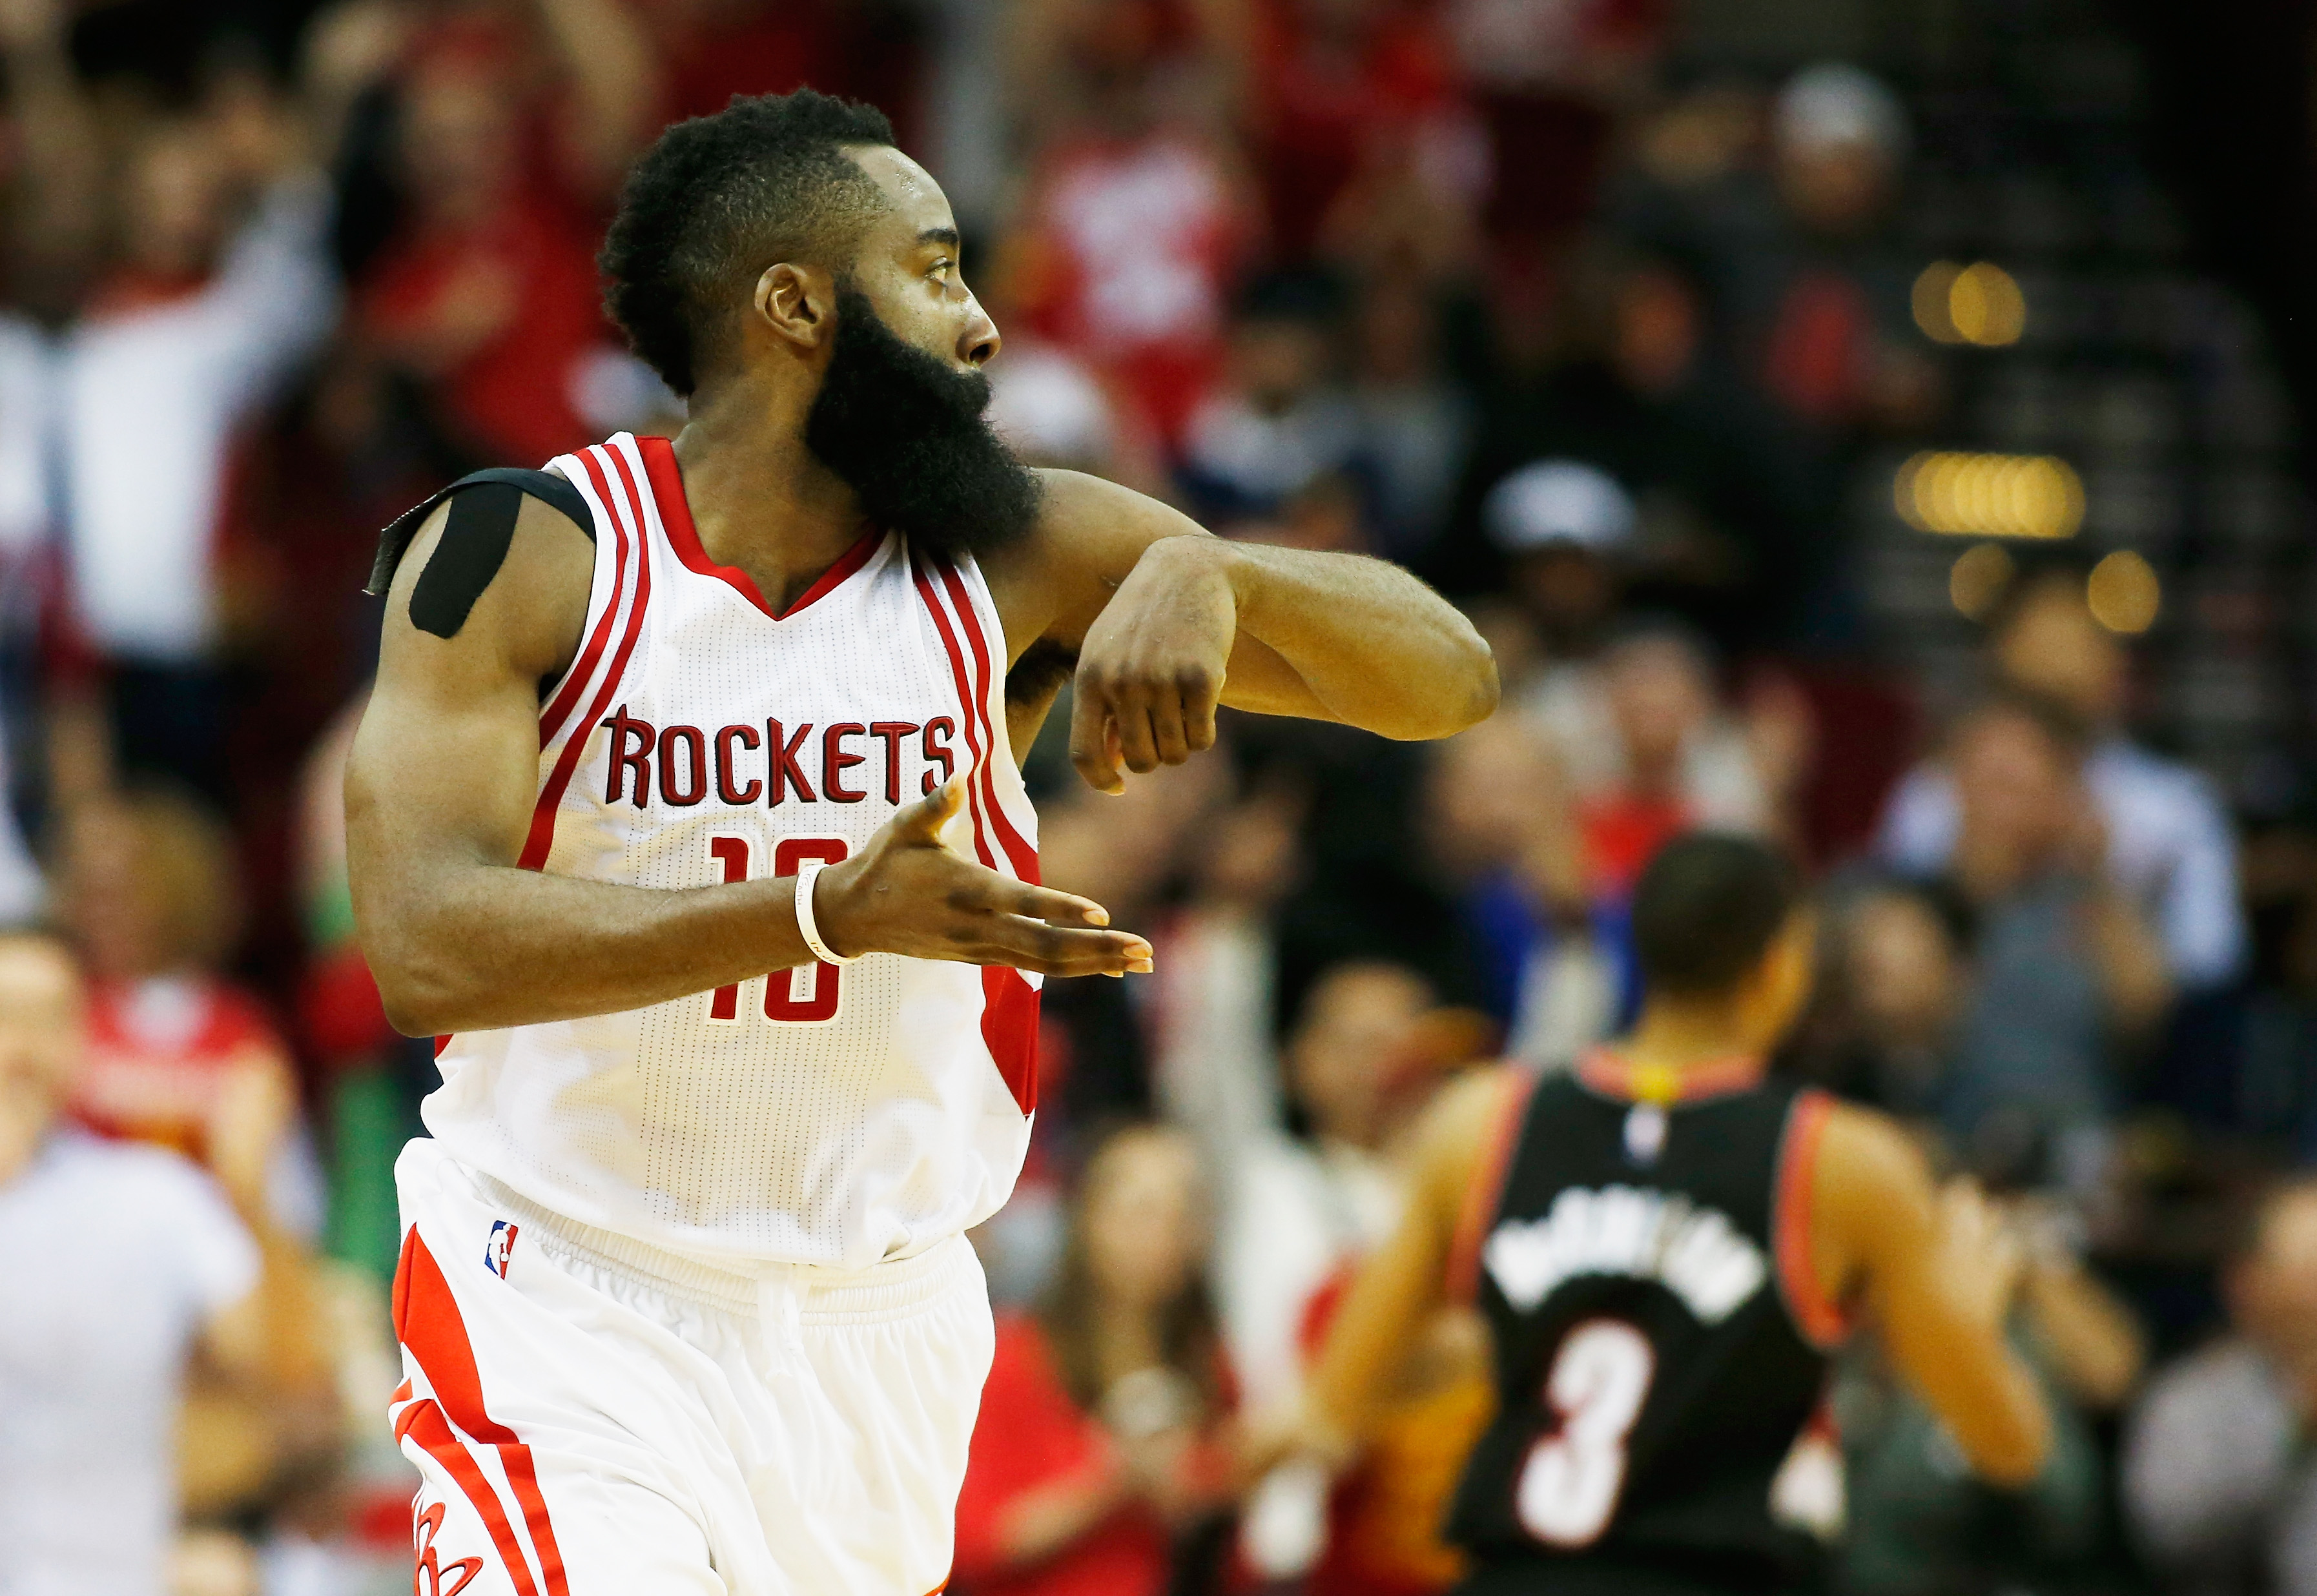 HOUSTON, TX - NOVEMBER 18:  James Harden #13 of the Houston Rockets celebrates after he hit a three-point shot near the end of the fourth quarter against the Portland Trail Blazers during their game at the Toyota Center on November 18, 2015 in Houston, Te